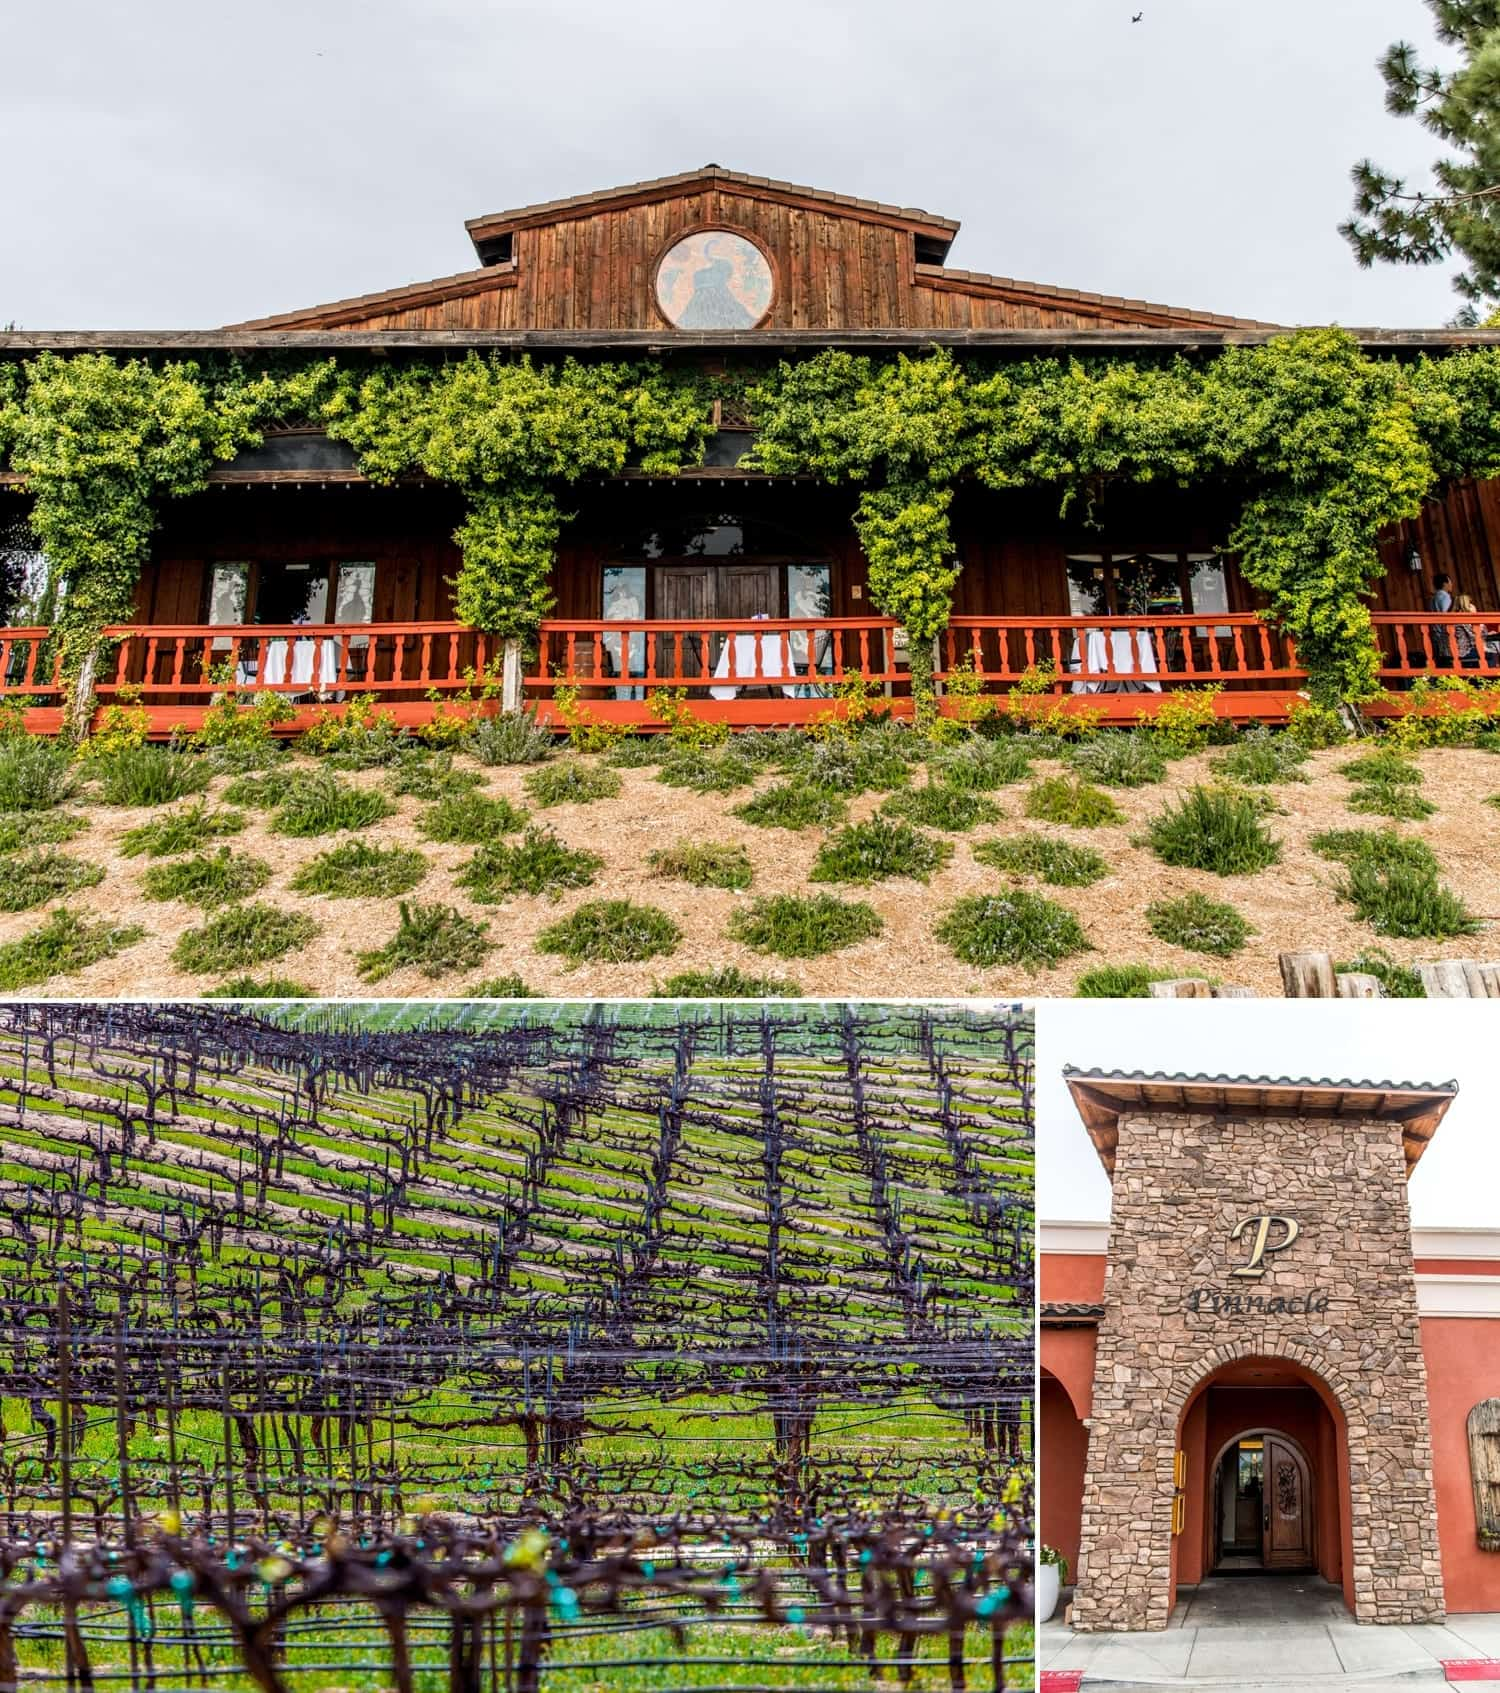 Photograph of Falkner Winery in Temecula California and the Pinacle Room